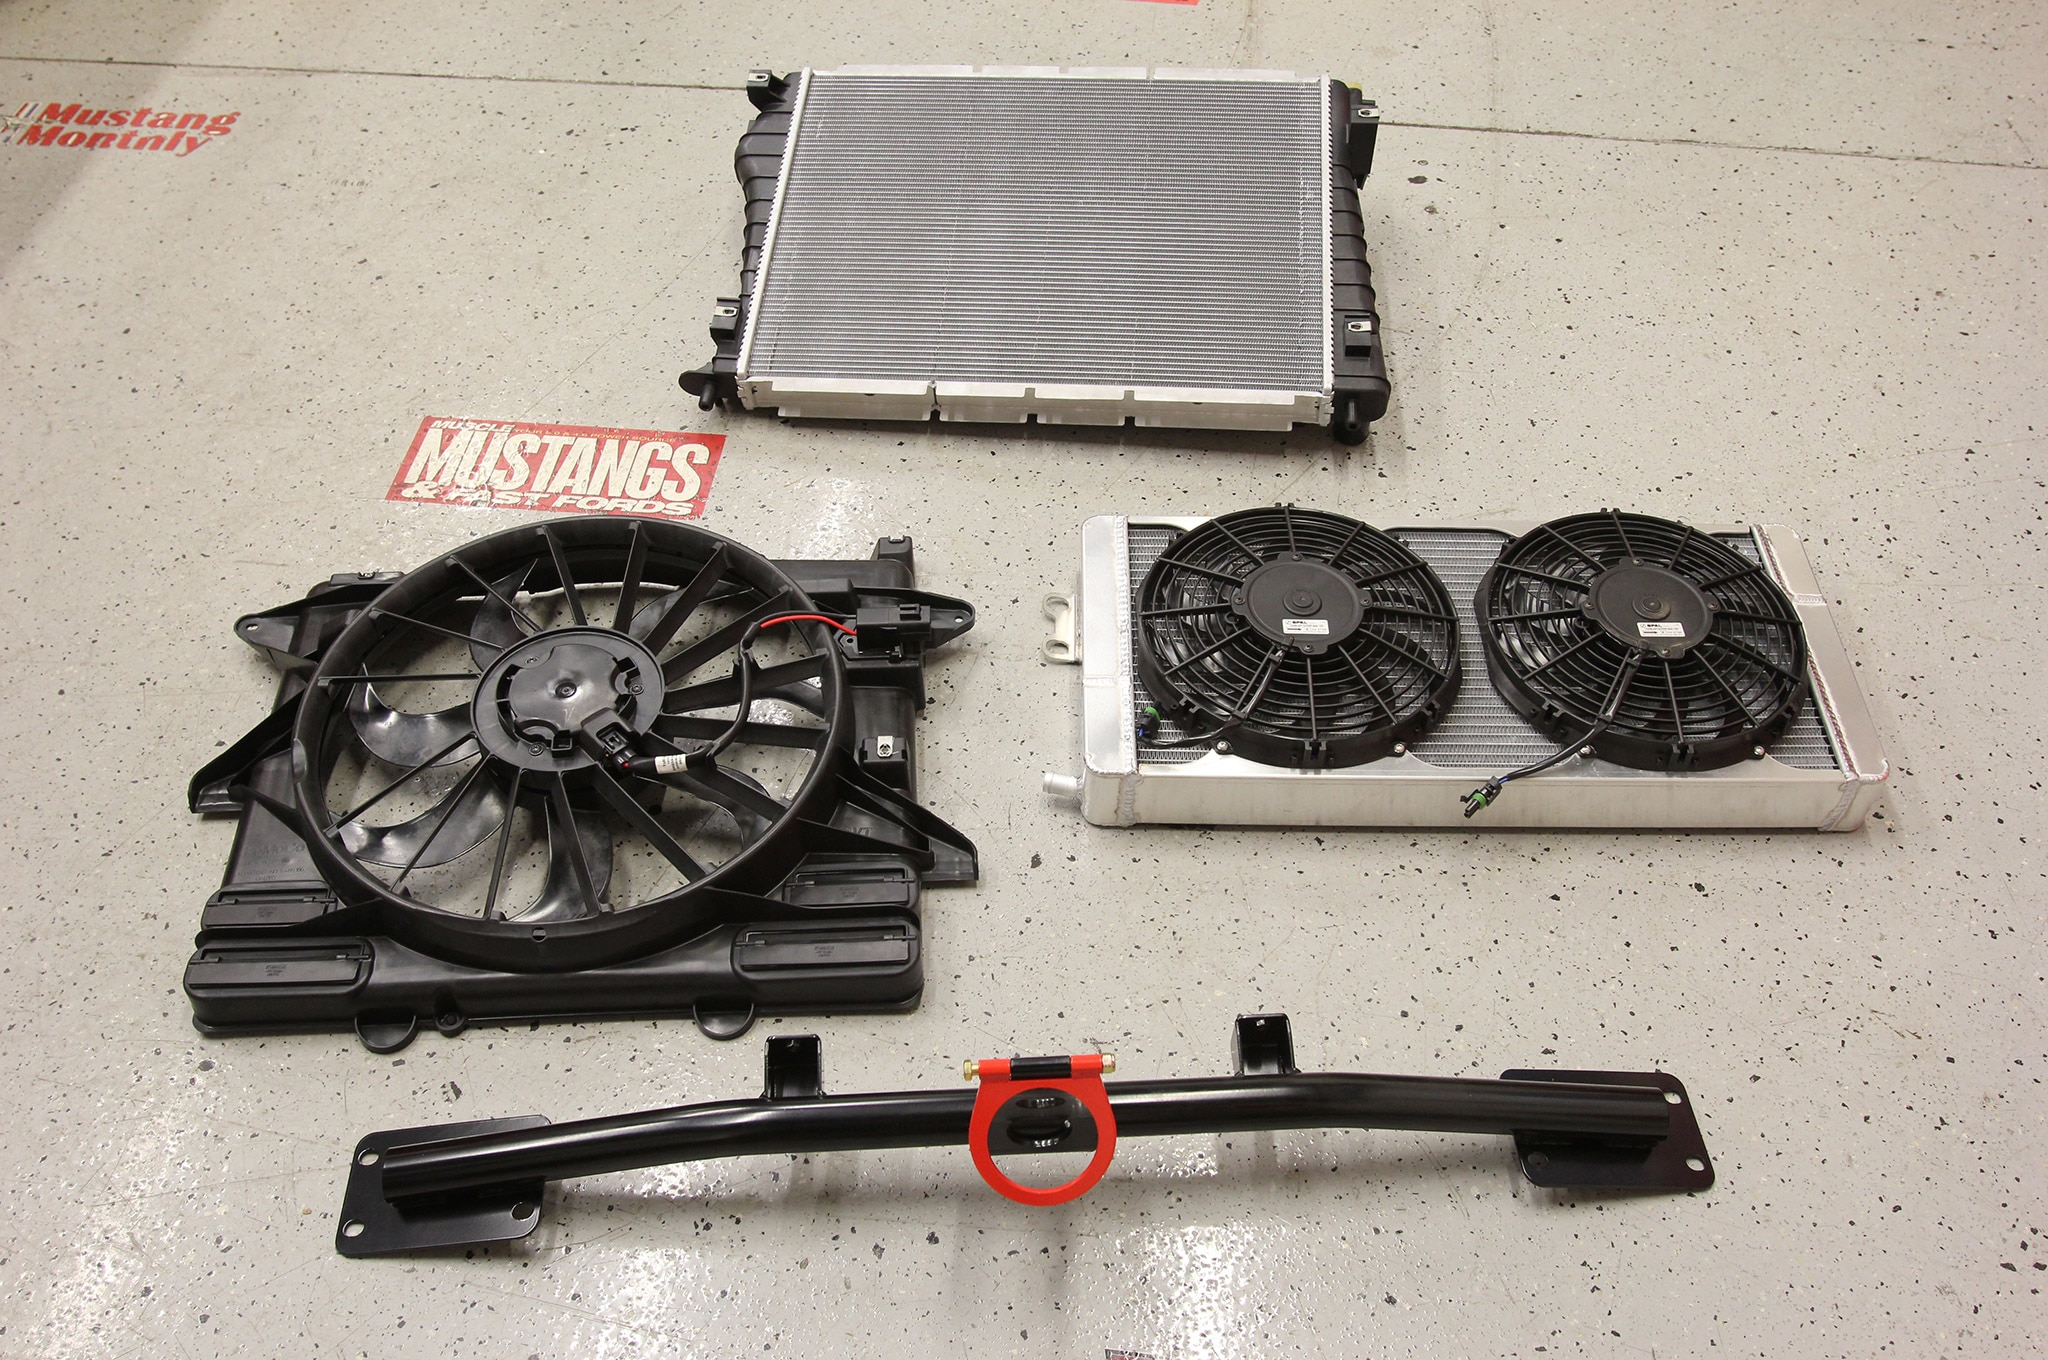 2011 Ford Mustang Vmp Supercharger Cooling Upgrade Components